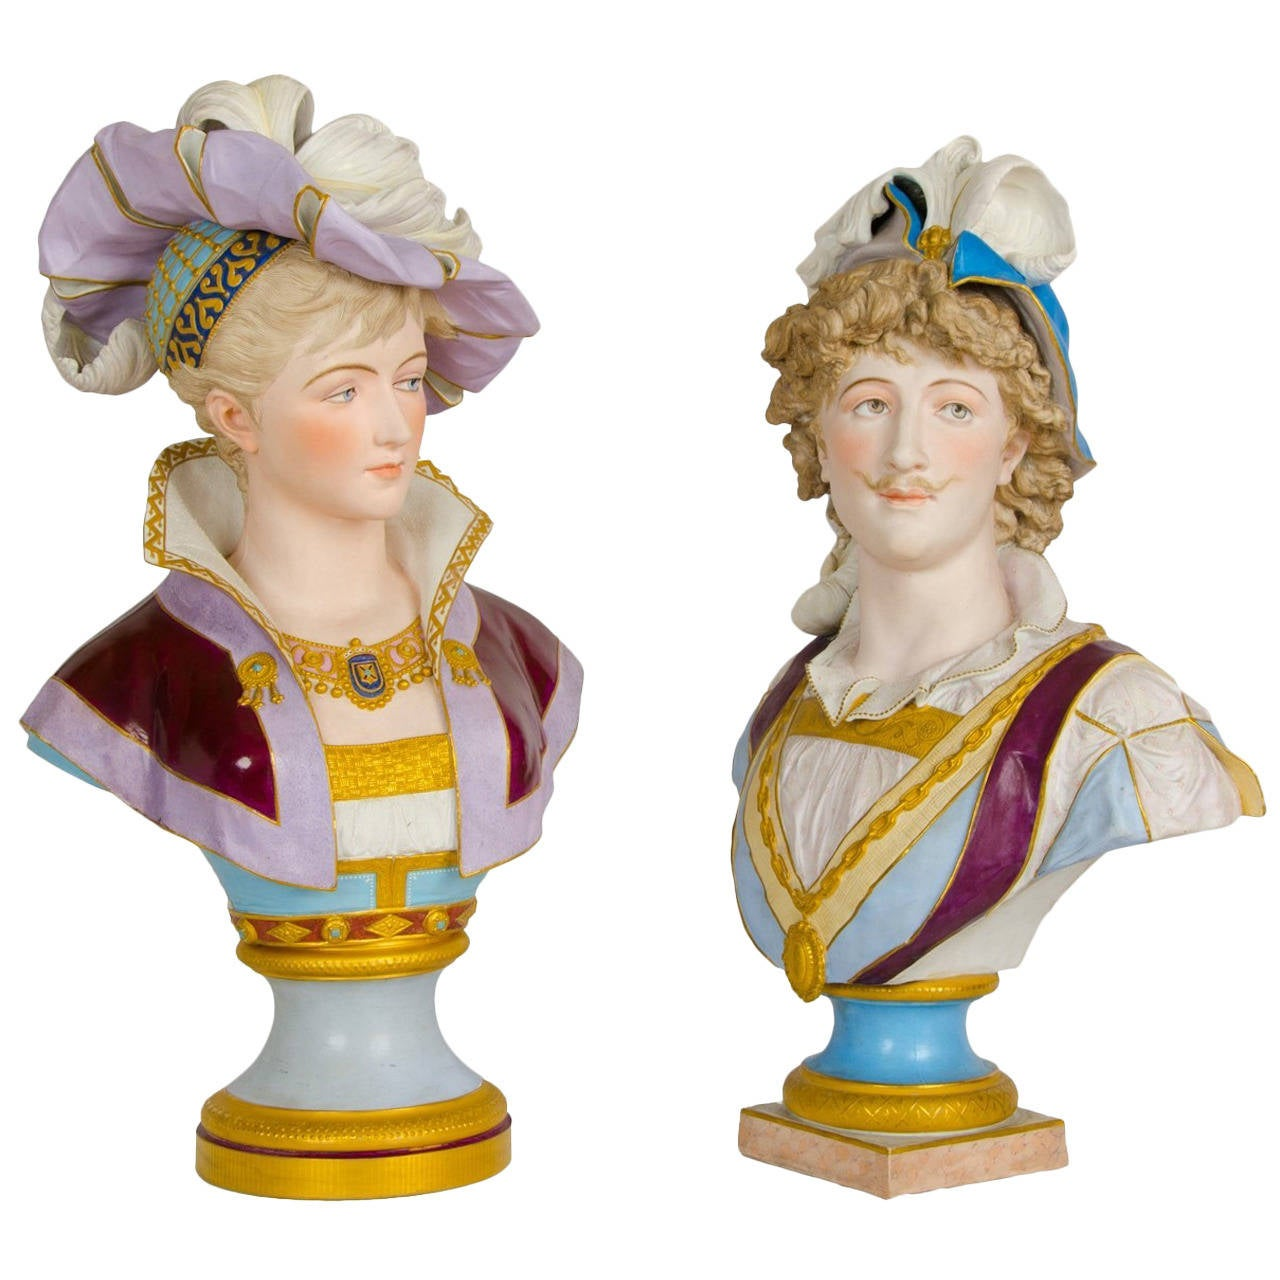 Near Pair of Bisque Porcelain Busts